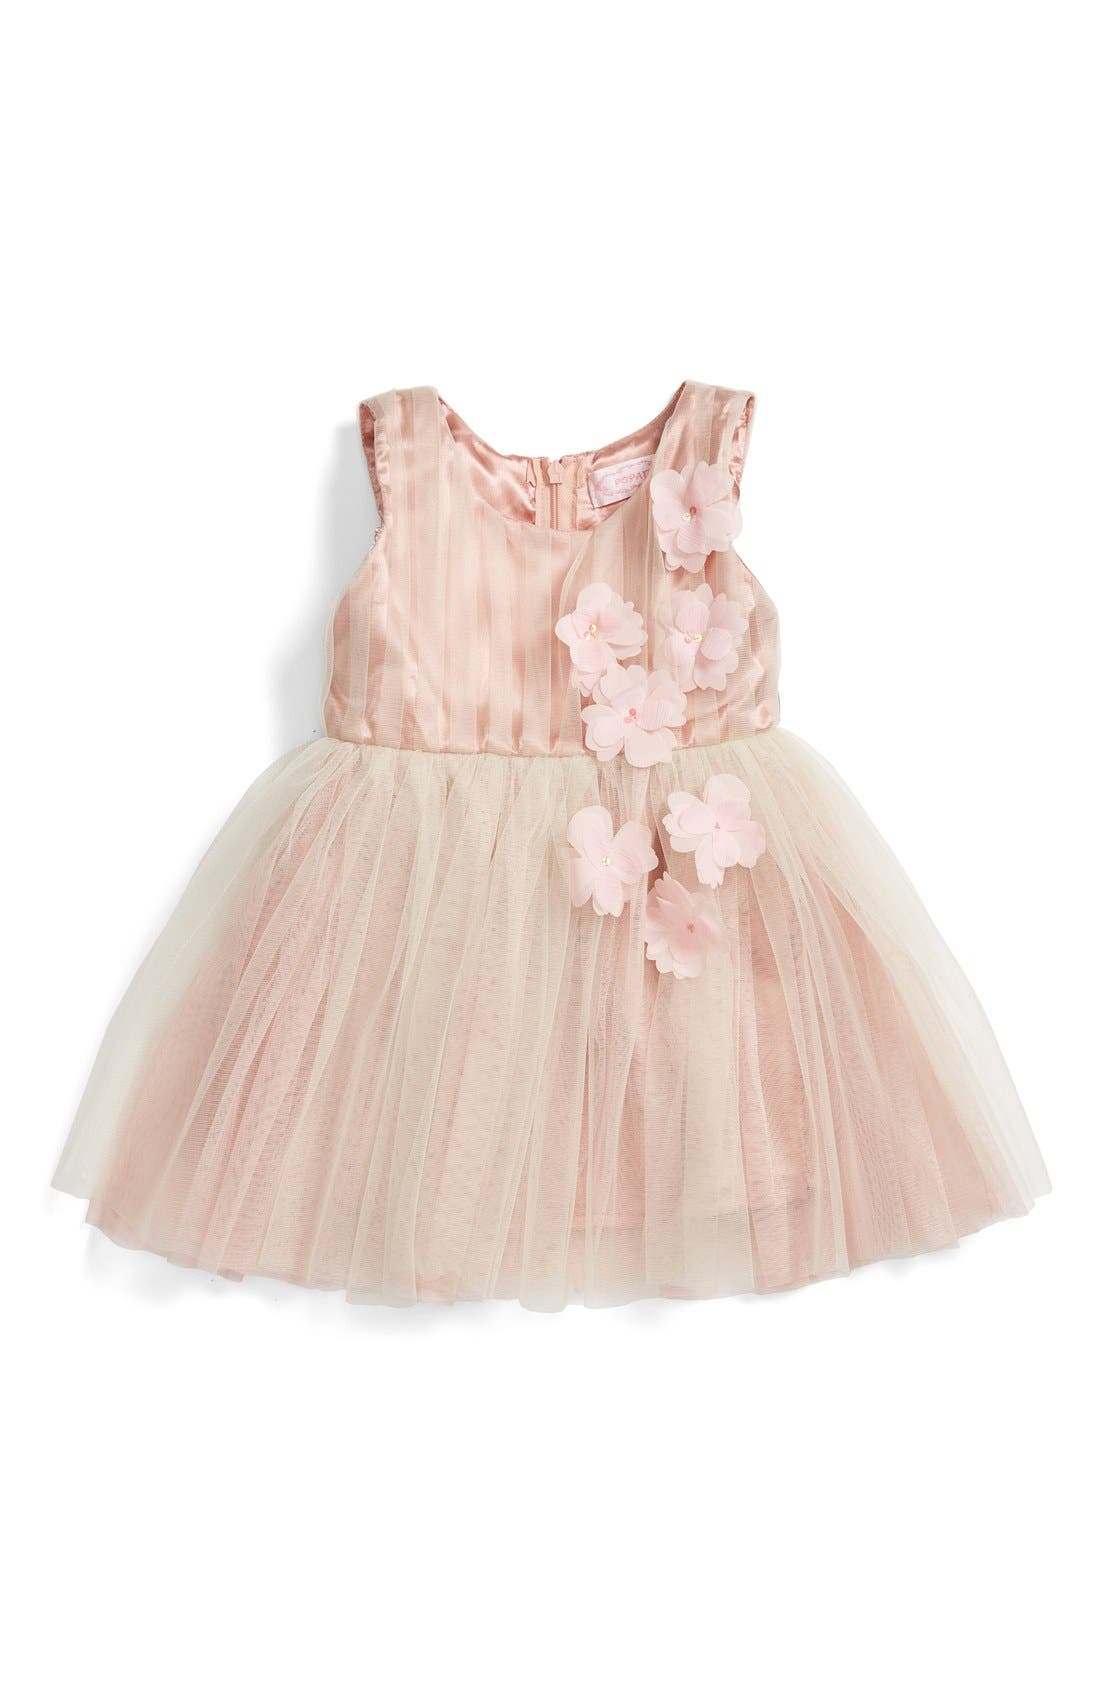 Sleeveless Rosette Tulle Dress,                             Main thumbnail 1, color,                             Taupe